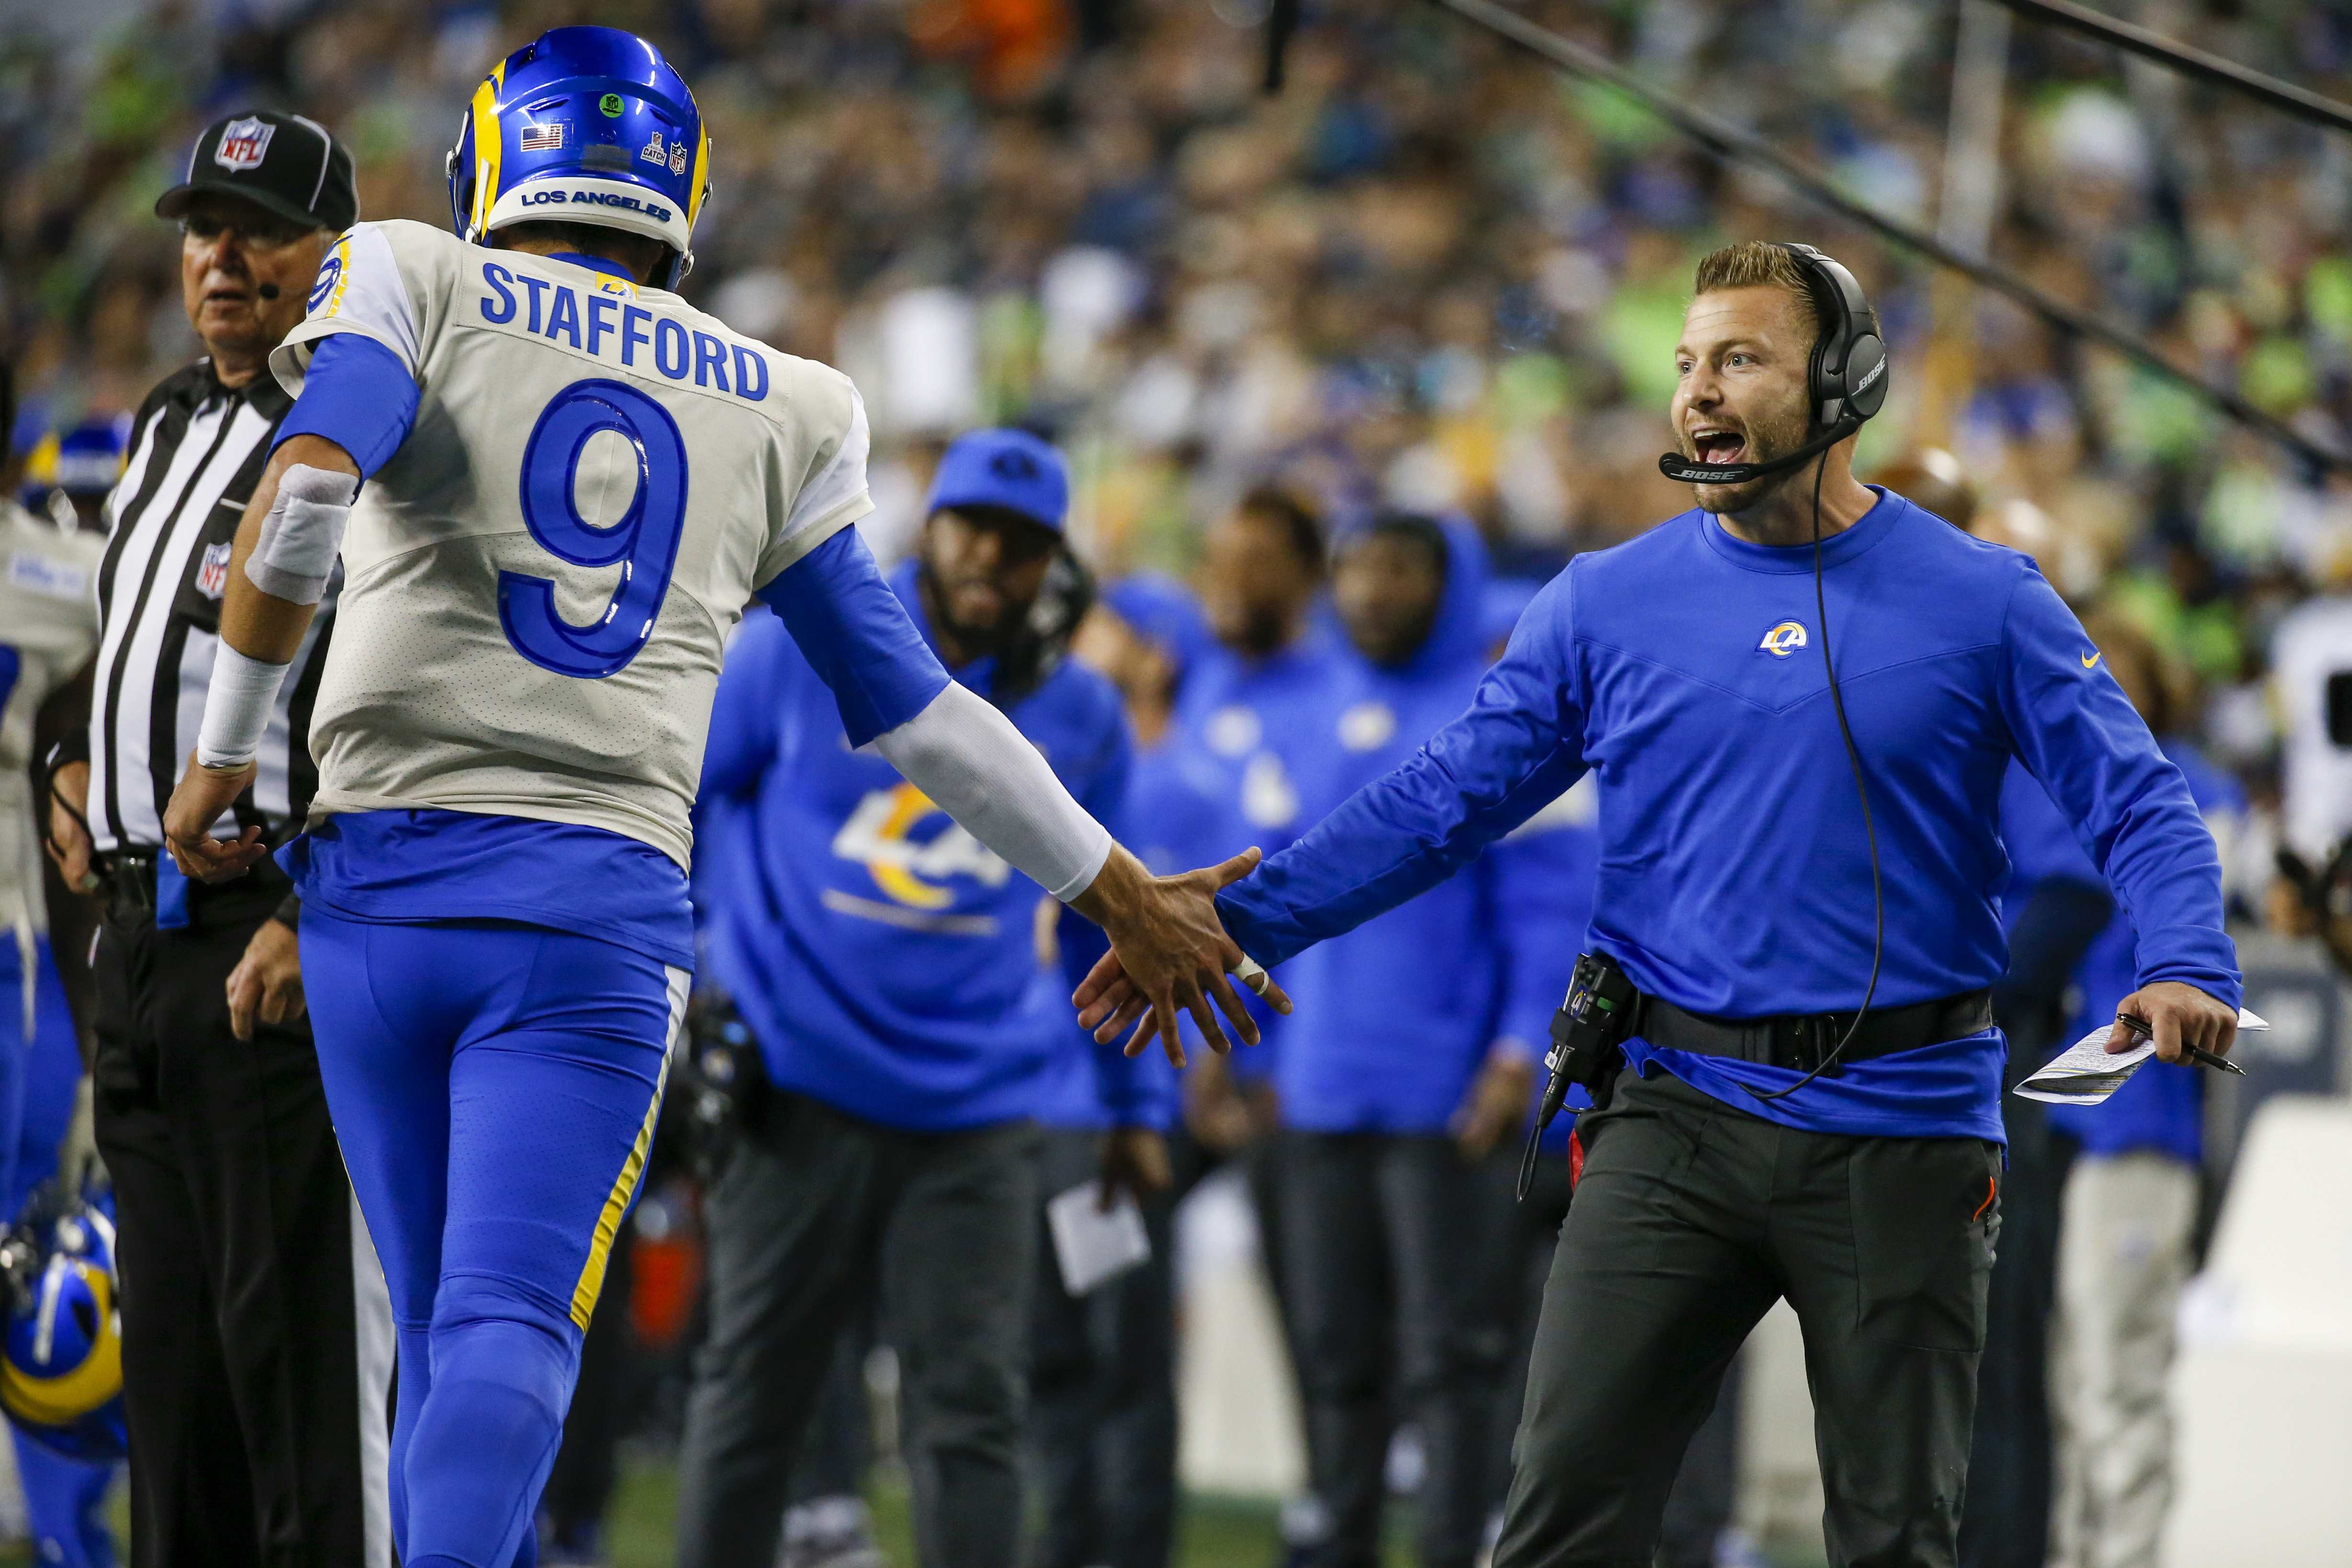 Los Angeles Rams head coach Sean McVay (right) celebrates with quarterback Matthew Stafford (9) following a touchdown against the Seattle Seahawks during the fourth quarter at Lumen Field.